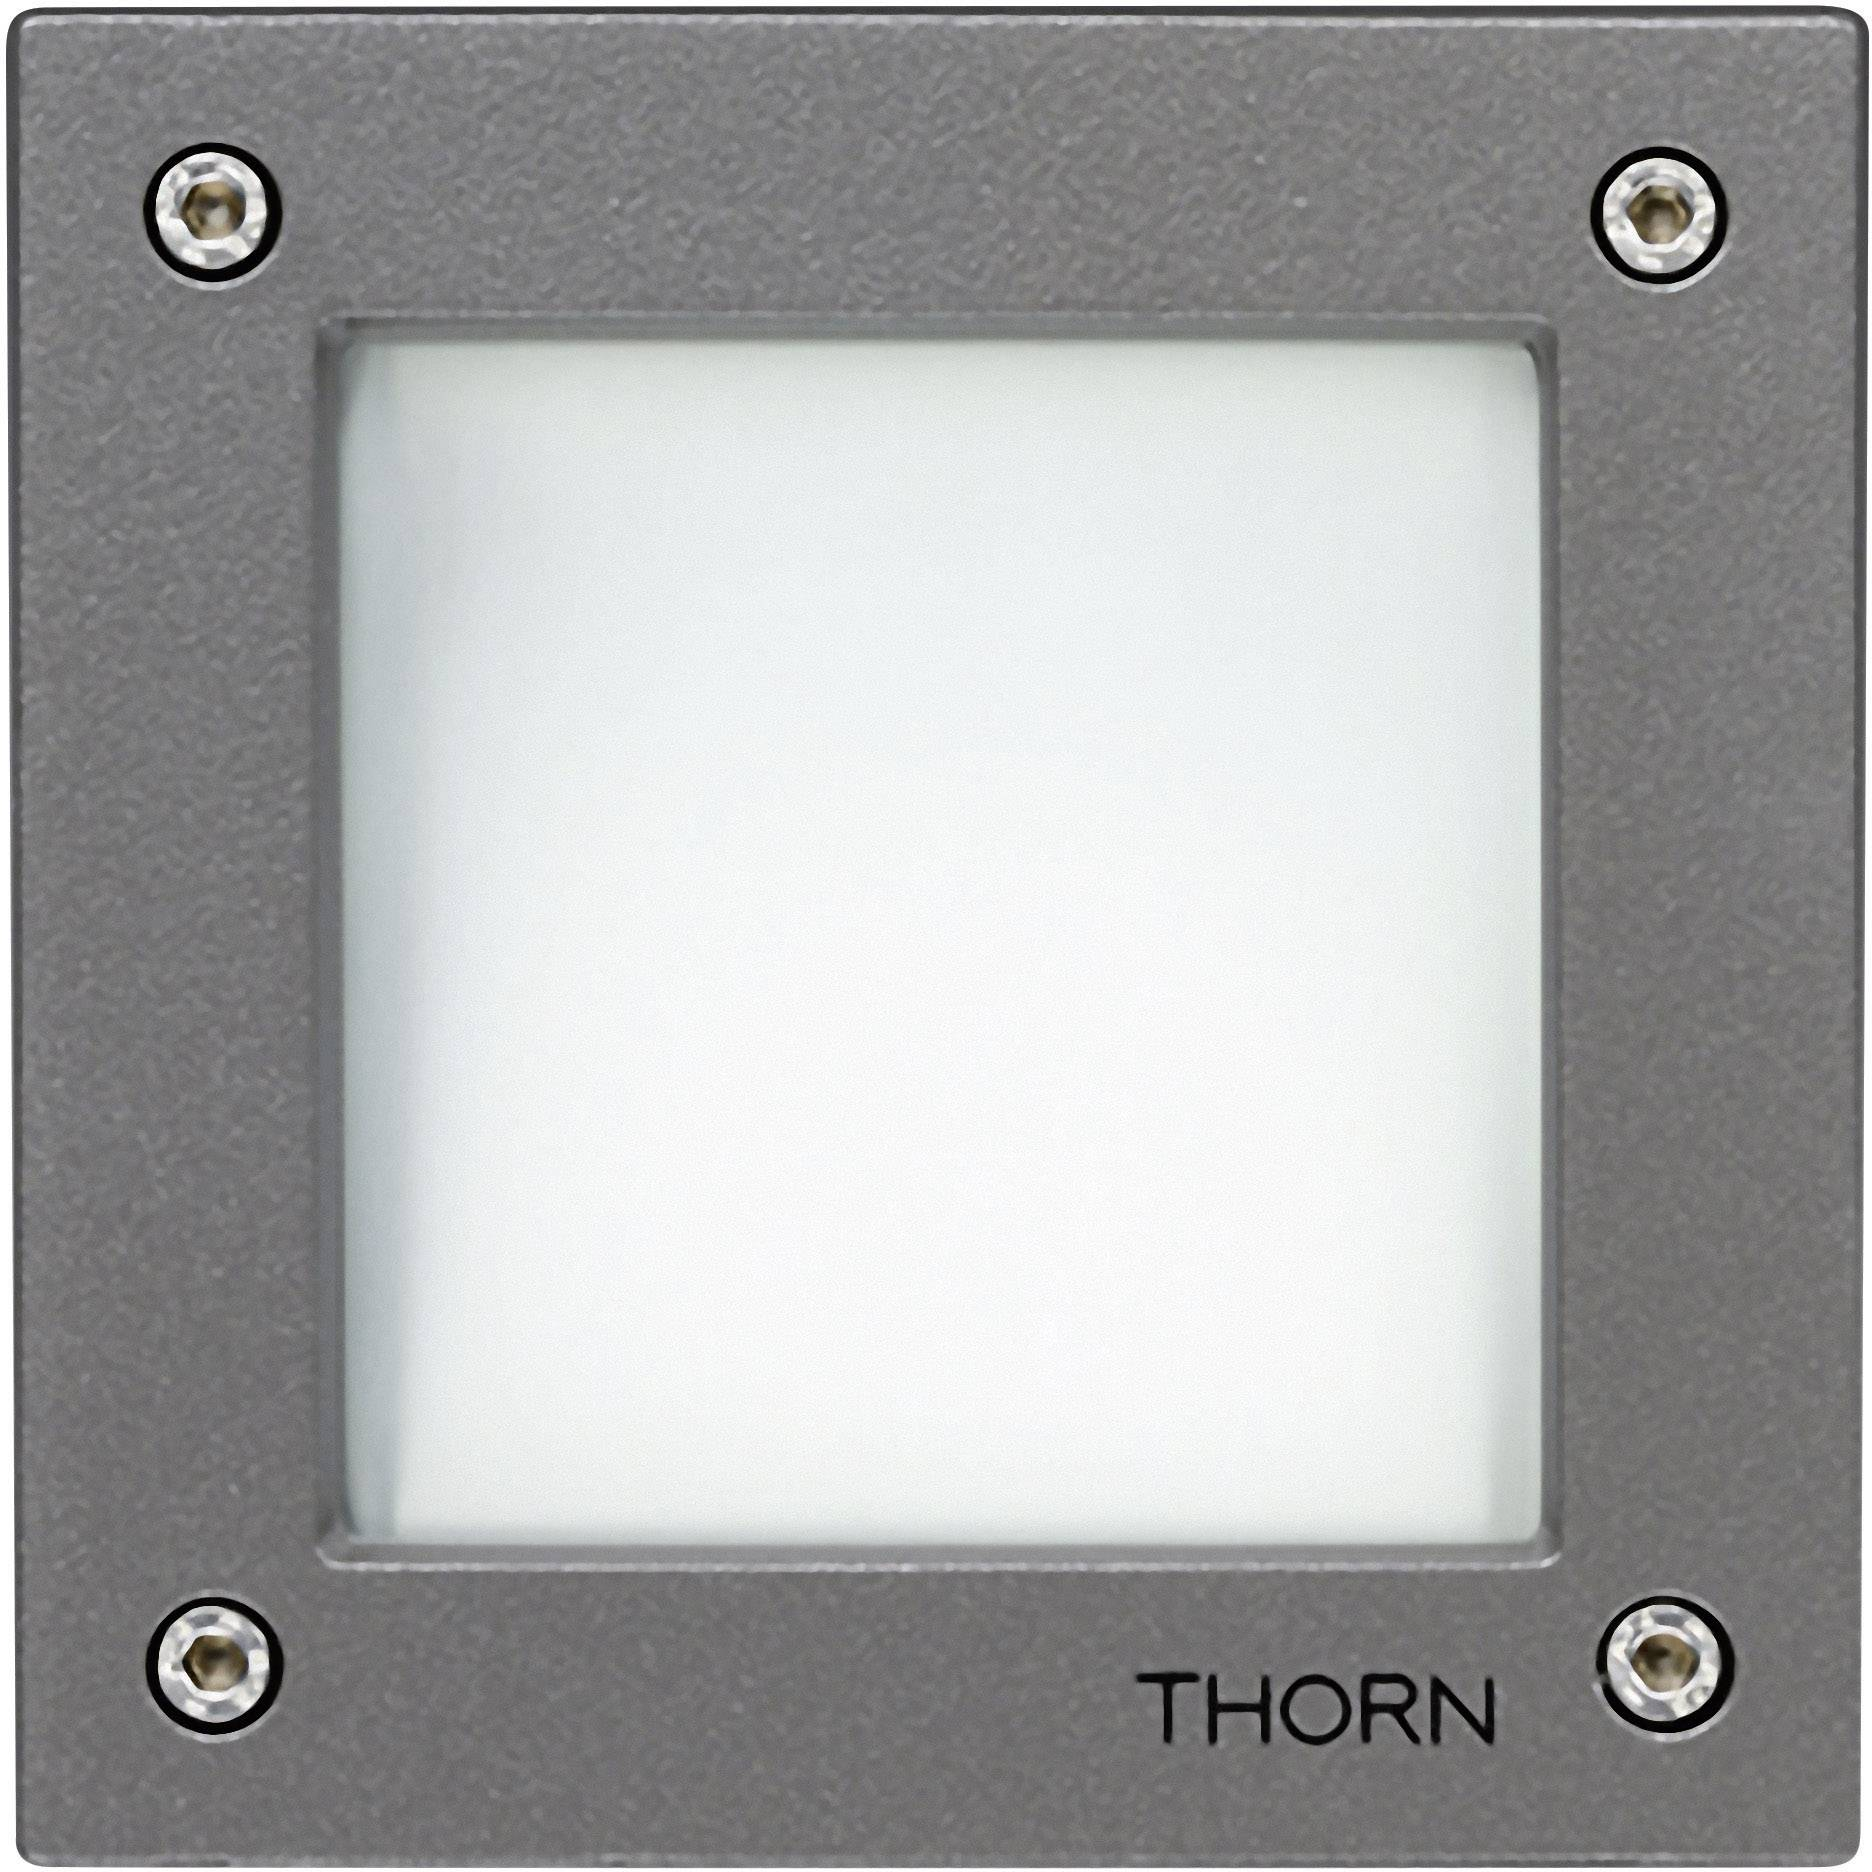 Thorn Verlichting Led Inbouw Buitenlamp 3 4 W Energielabel Led A E Neutraal Wit Thorn Linn 96262125 Grijs